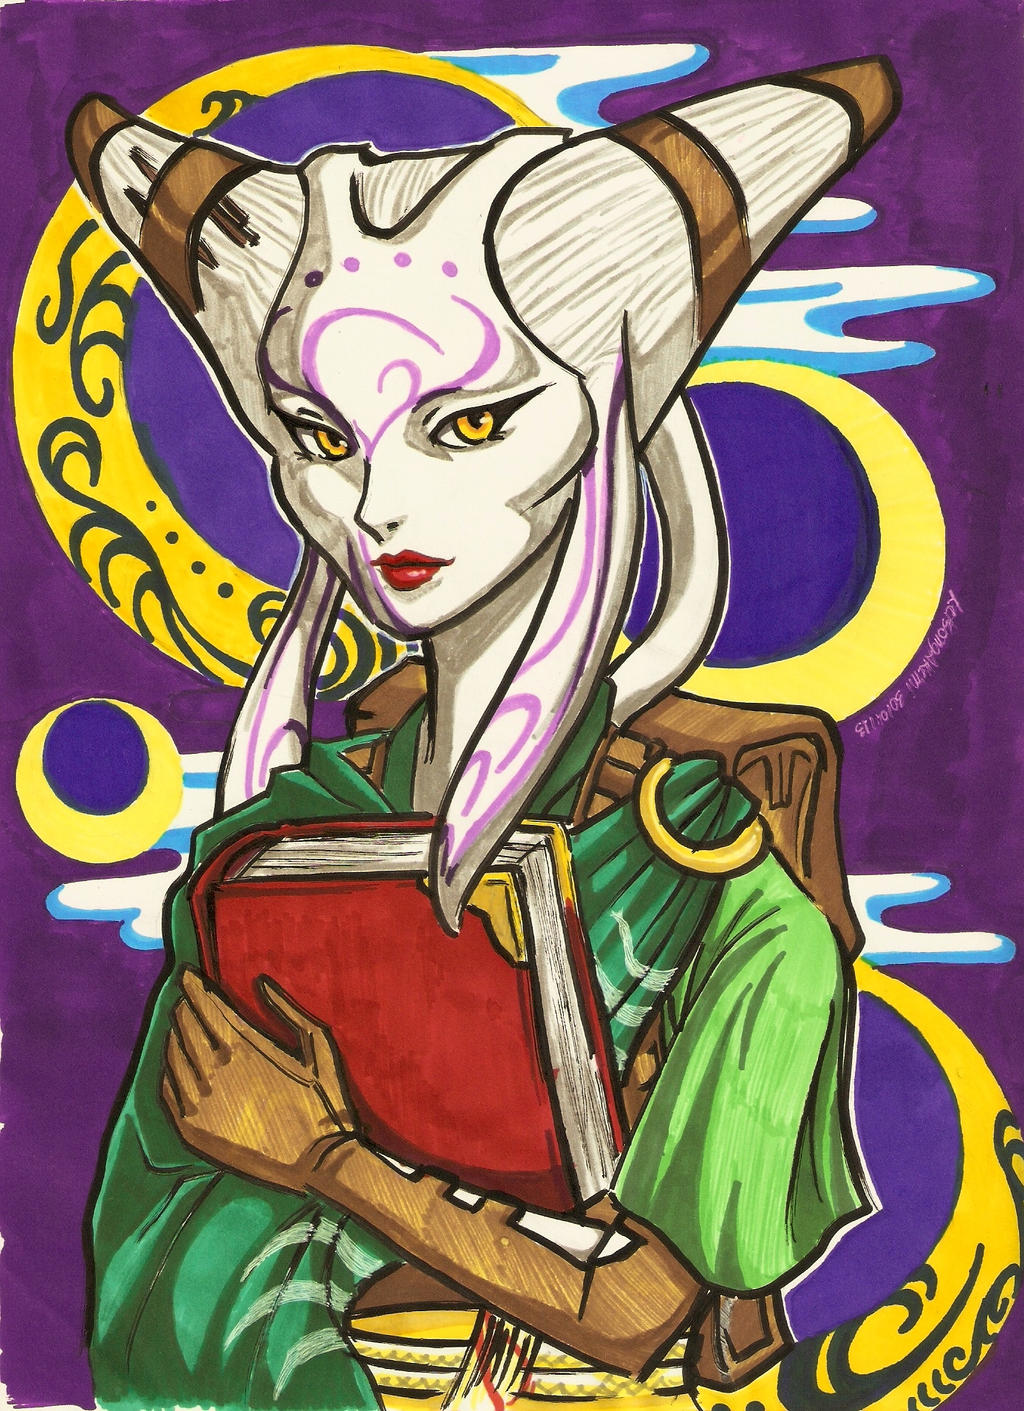 MTG's Tamiyo, the Moon Sage - Markers by LetsongAkemi